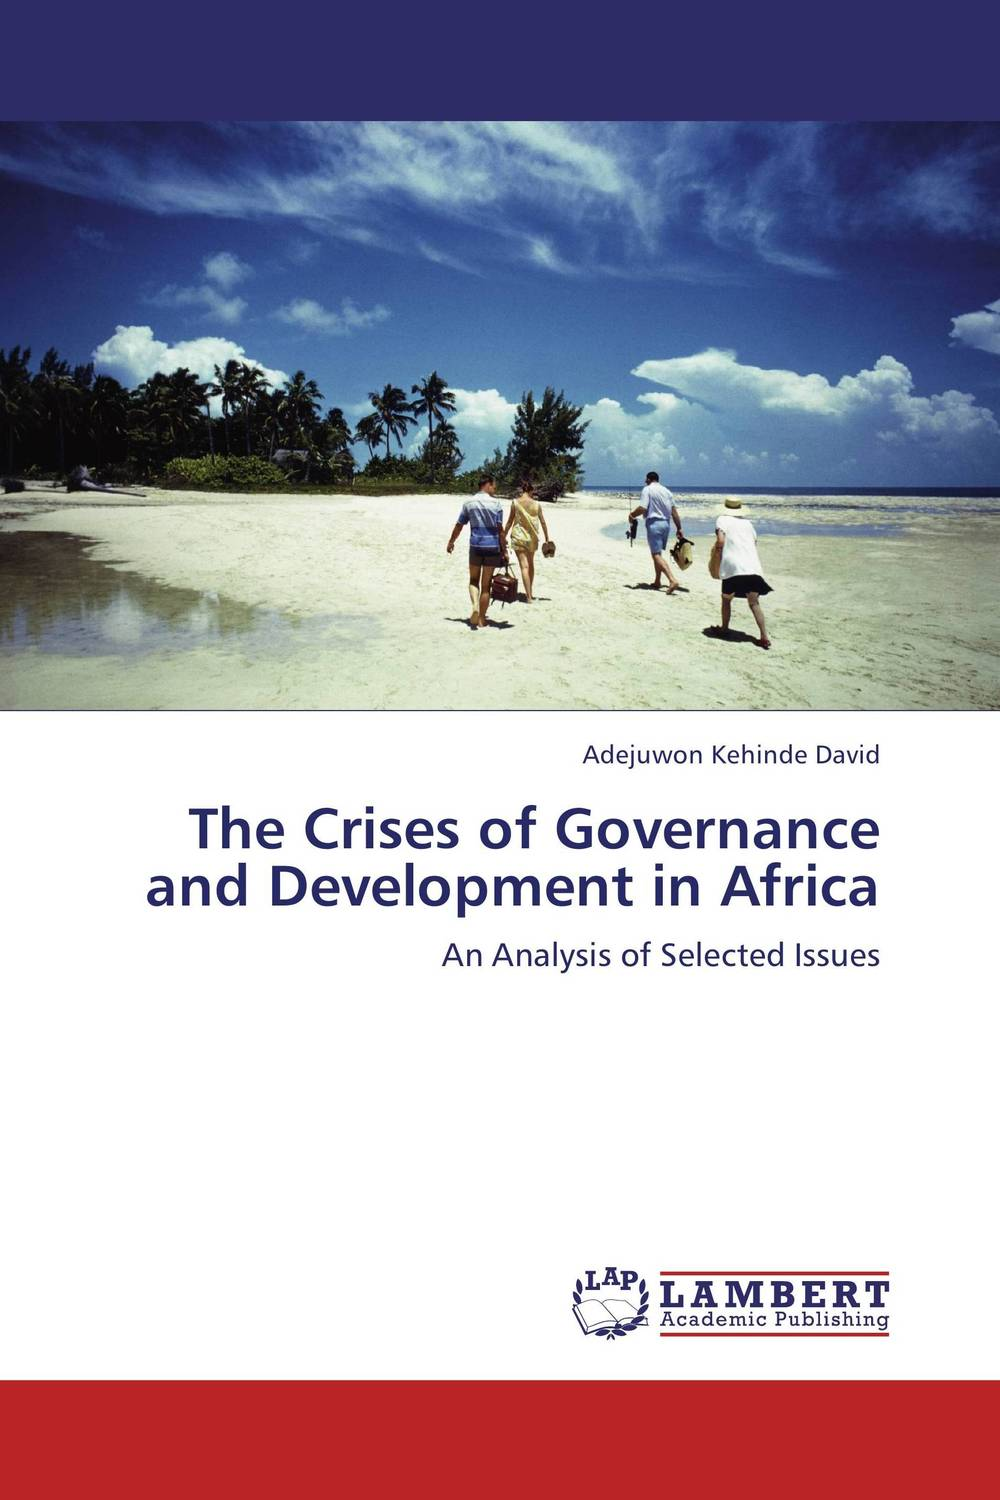 Фото The Crises of Governance and Development in Africa business and ethics in a country with political socio economic crisis